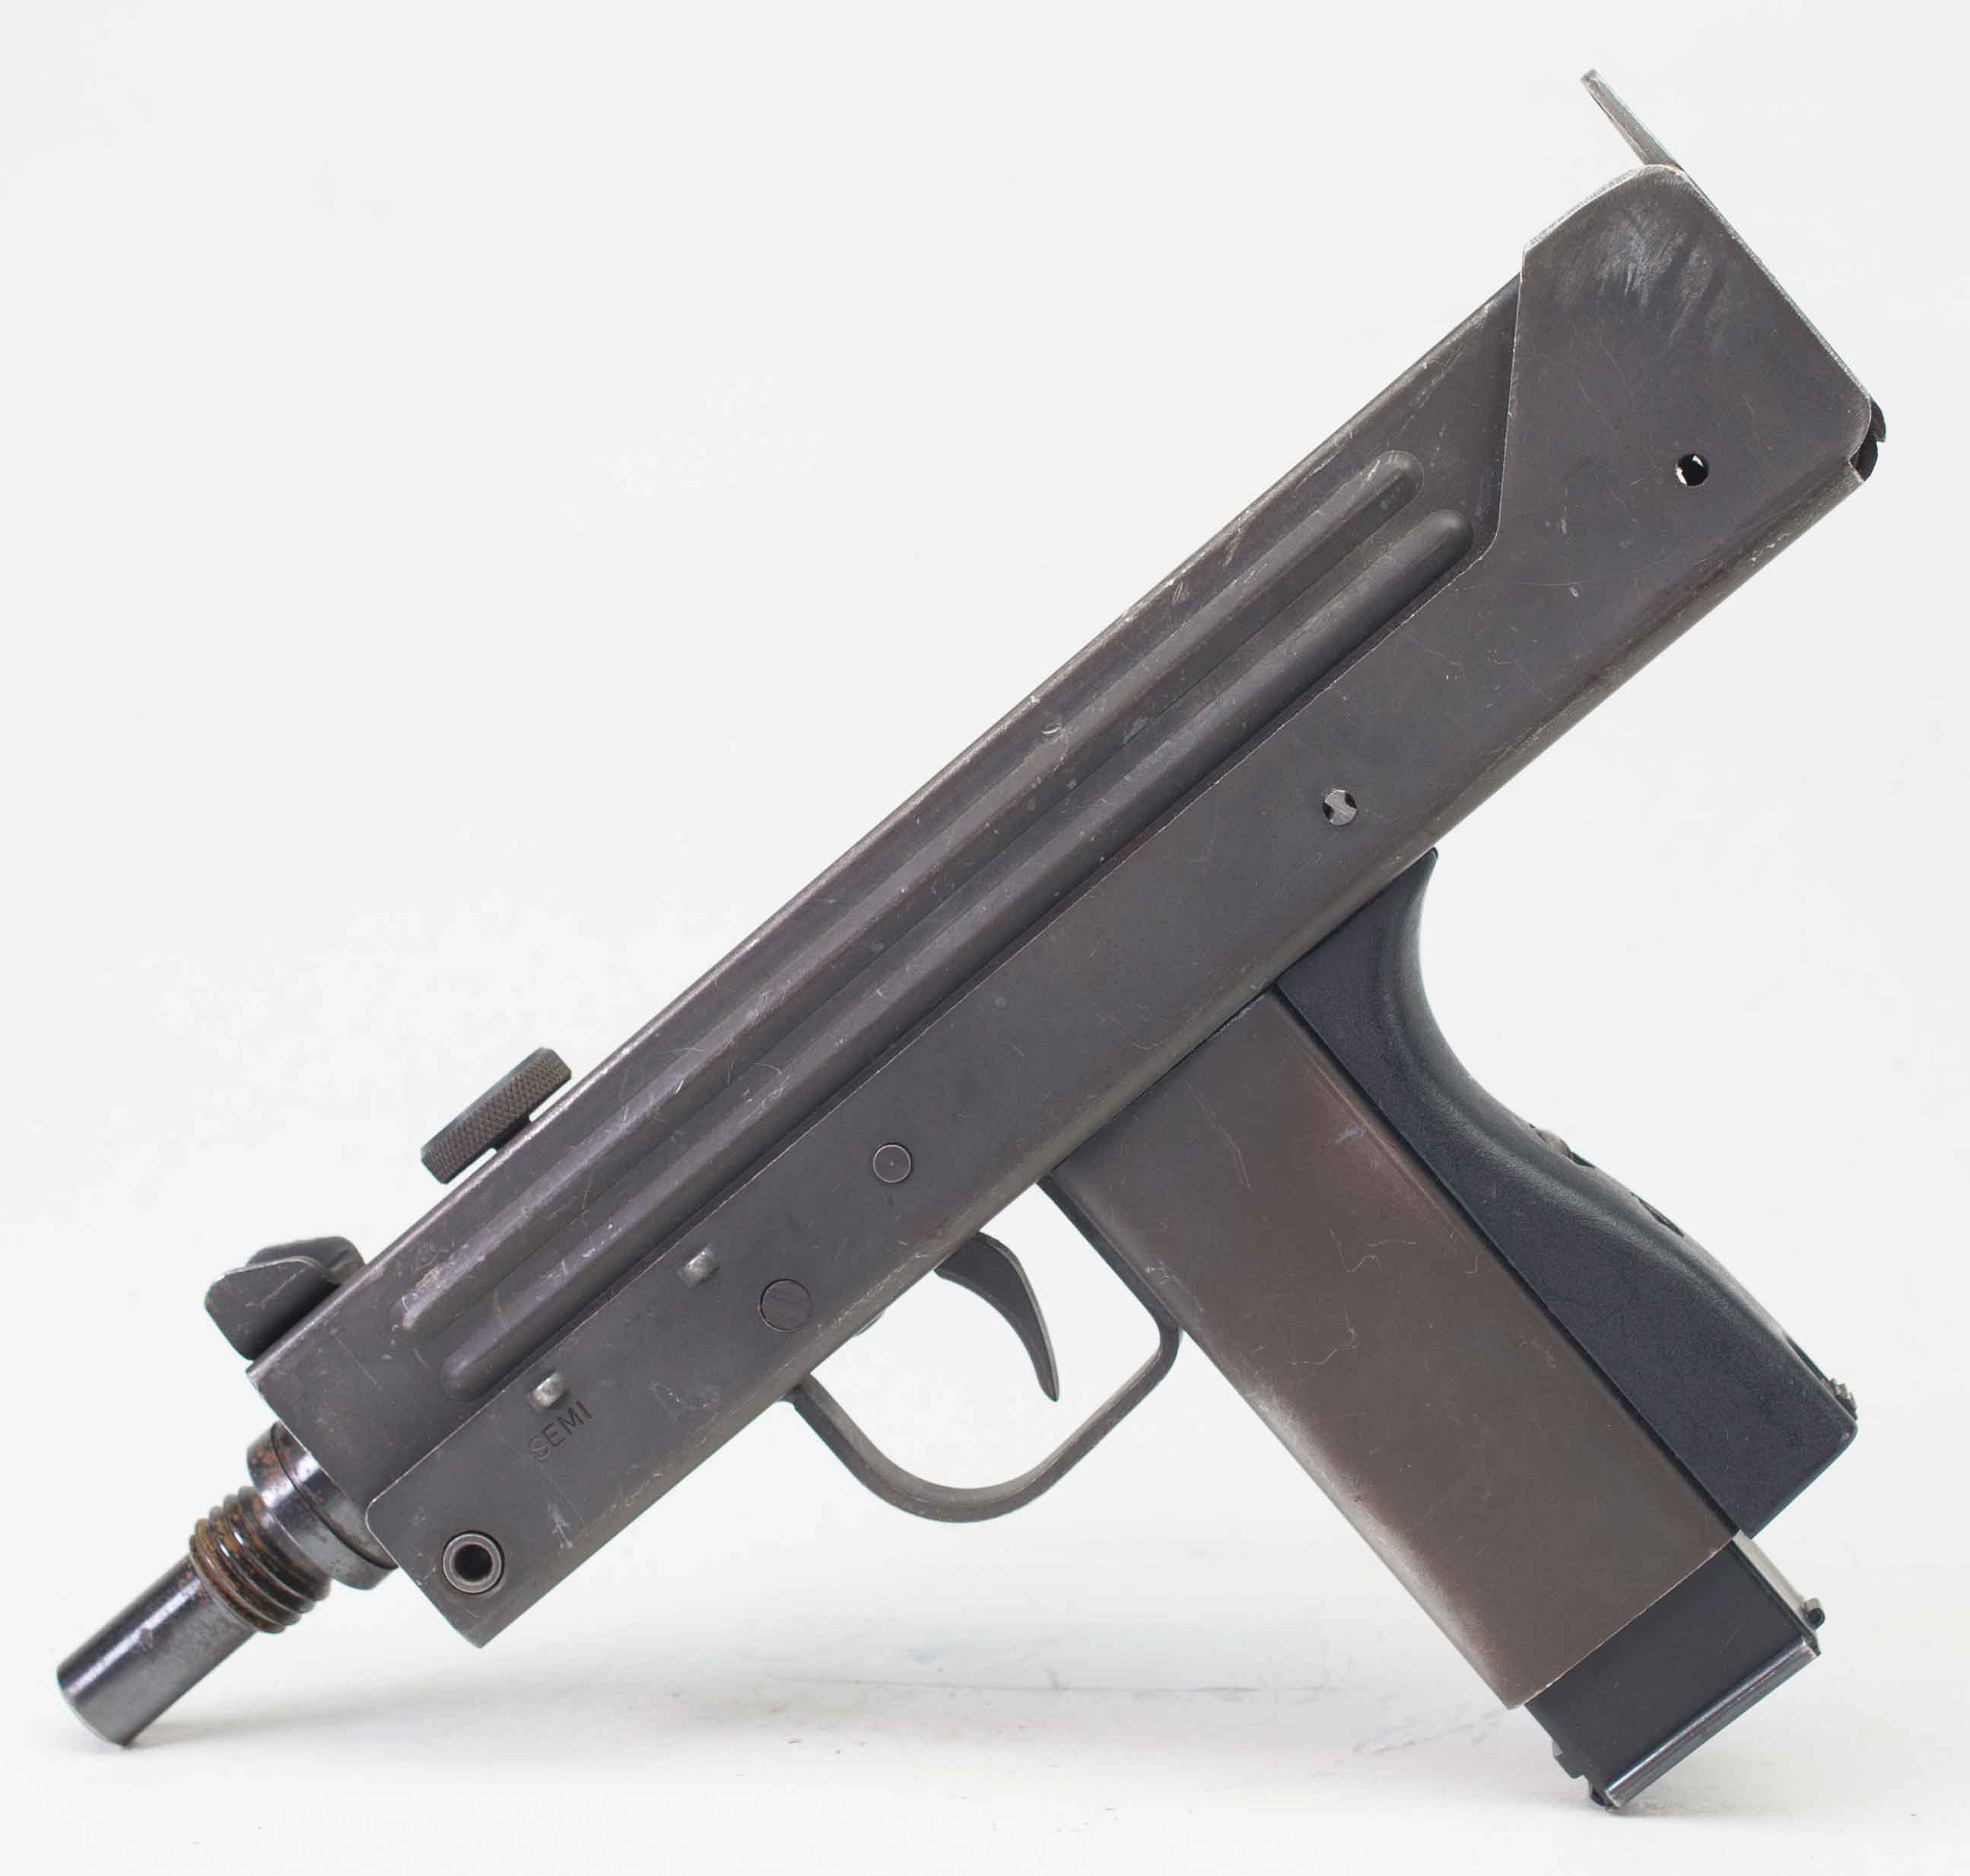 COBRAY M11 9MM (Auction ID: 11358950, End Time : May  08